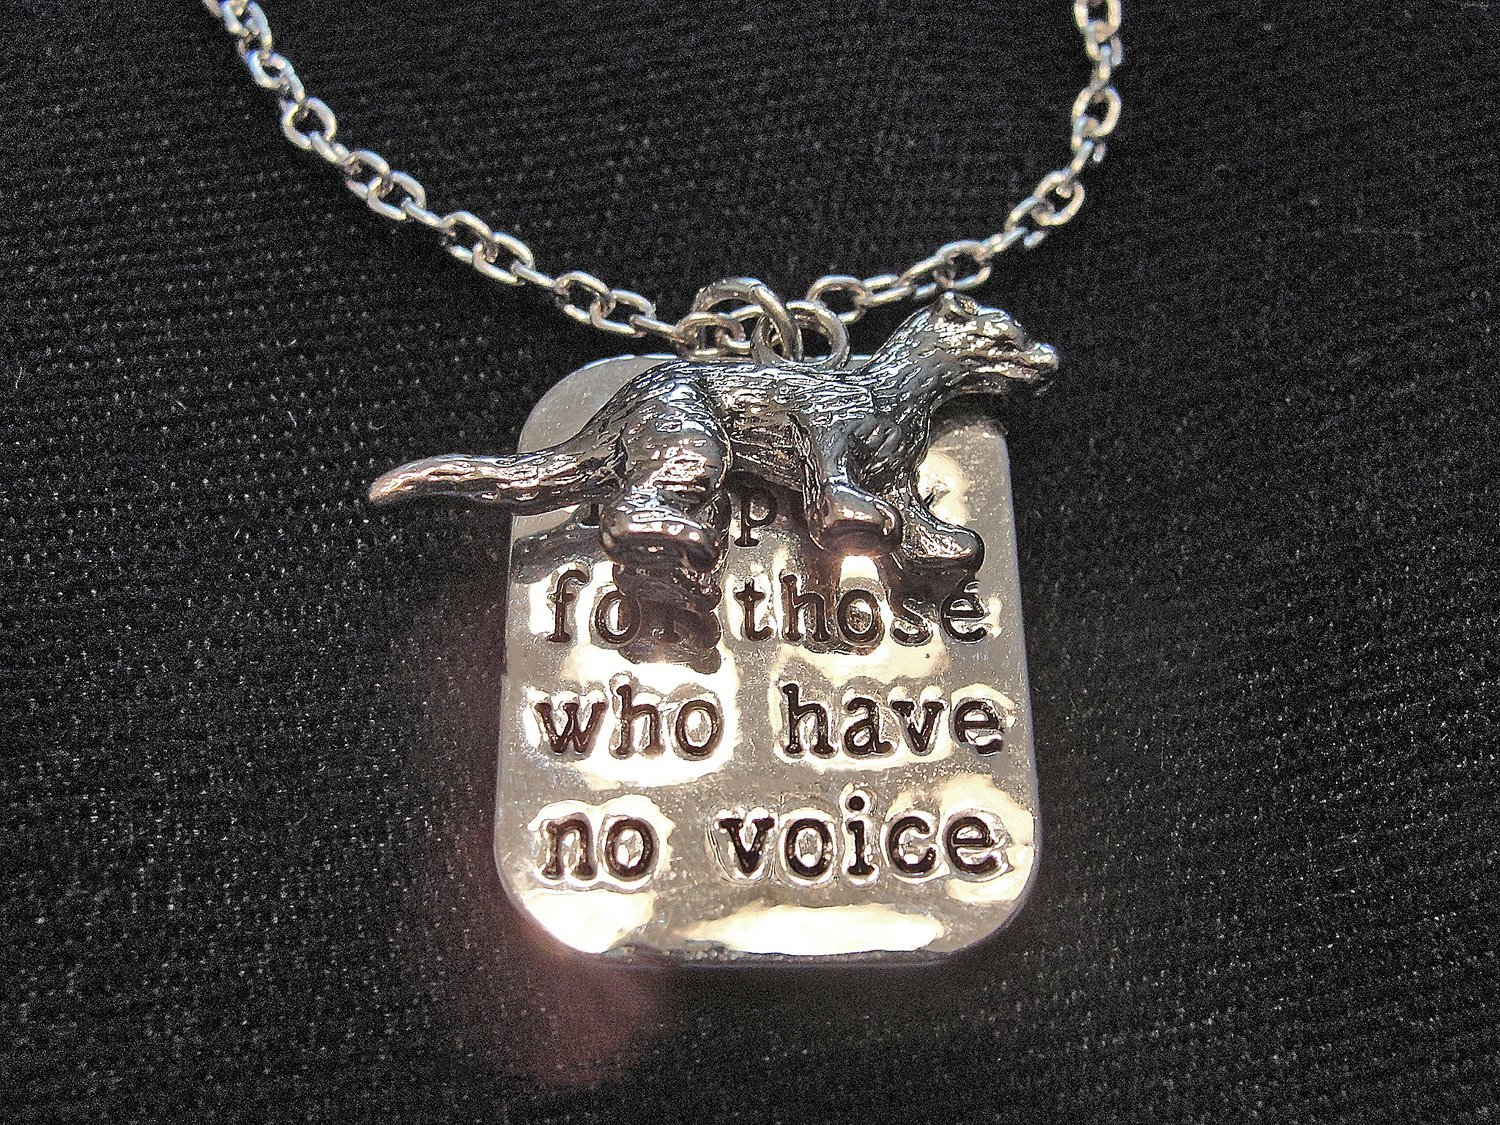 Pewter Ferret I Speak For Those Who Have No Voice Necklace